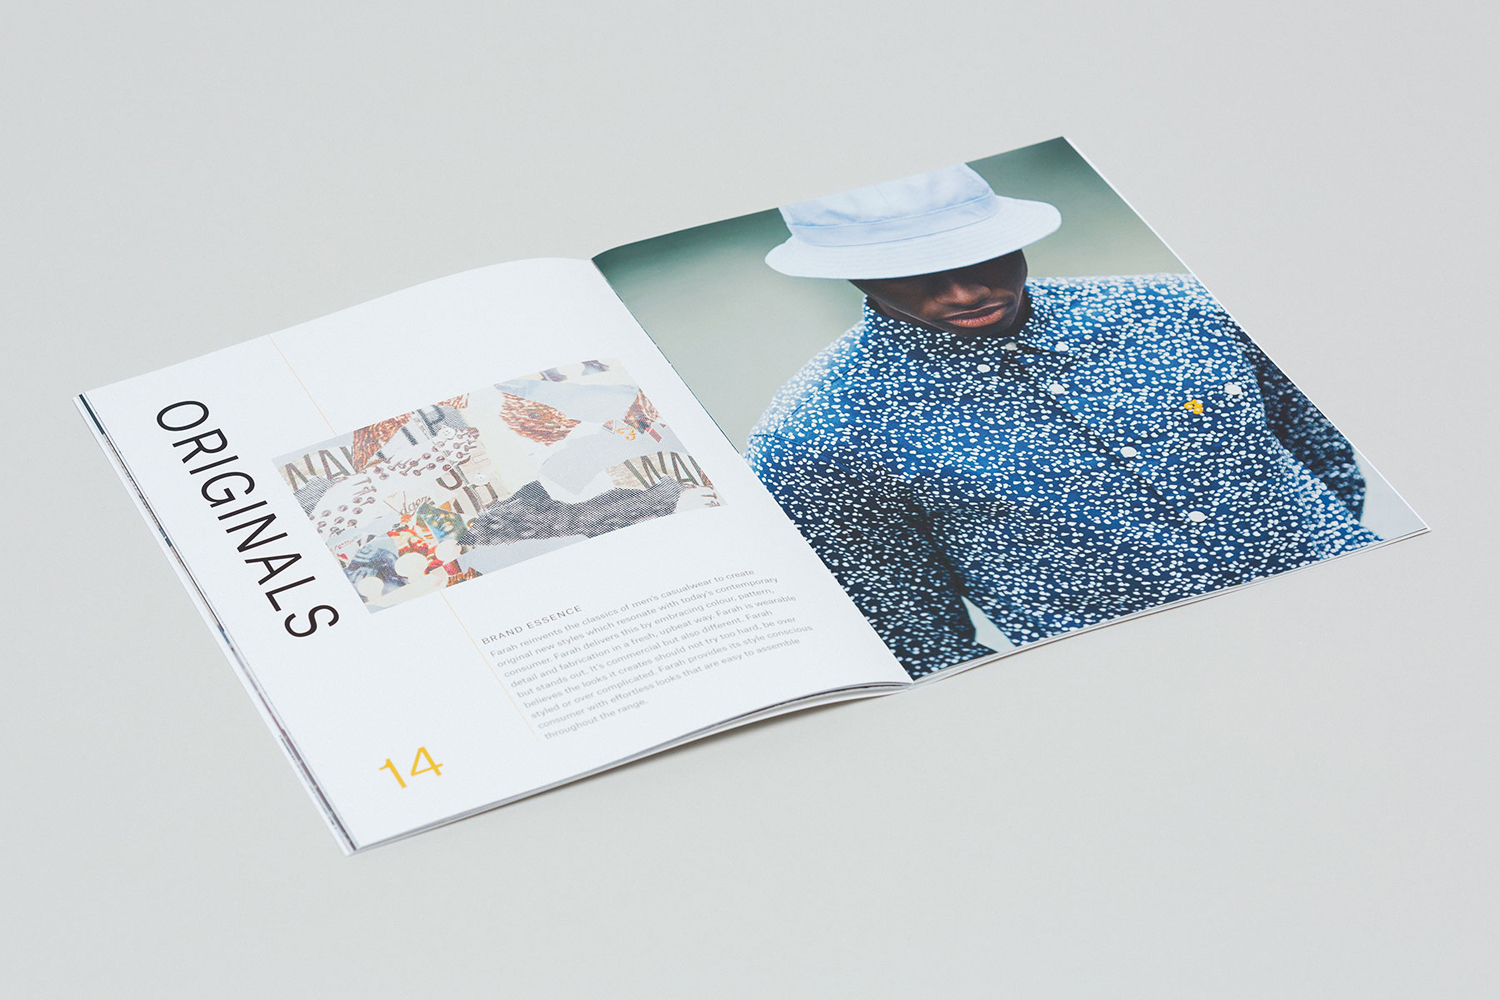 Brand identity and brand book for UK fashion brand Farah by graphic design studio Post